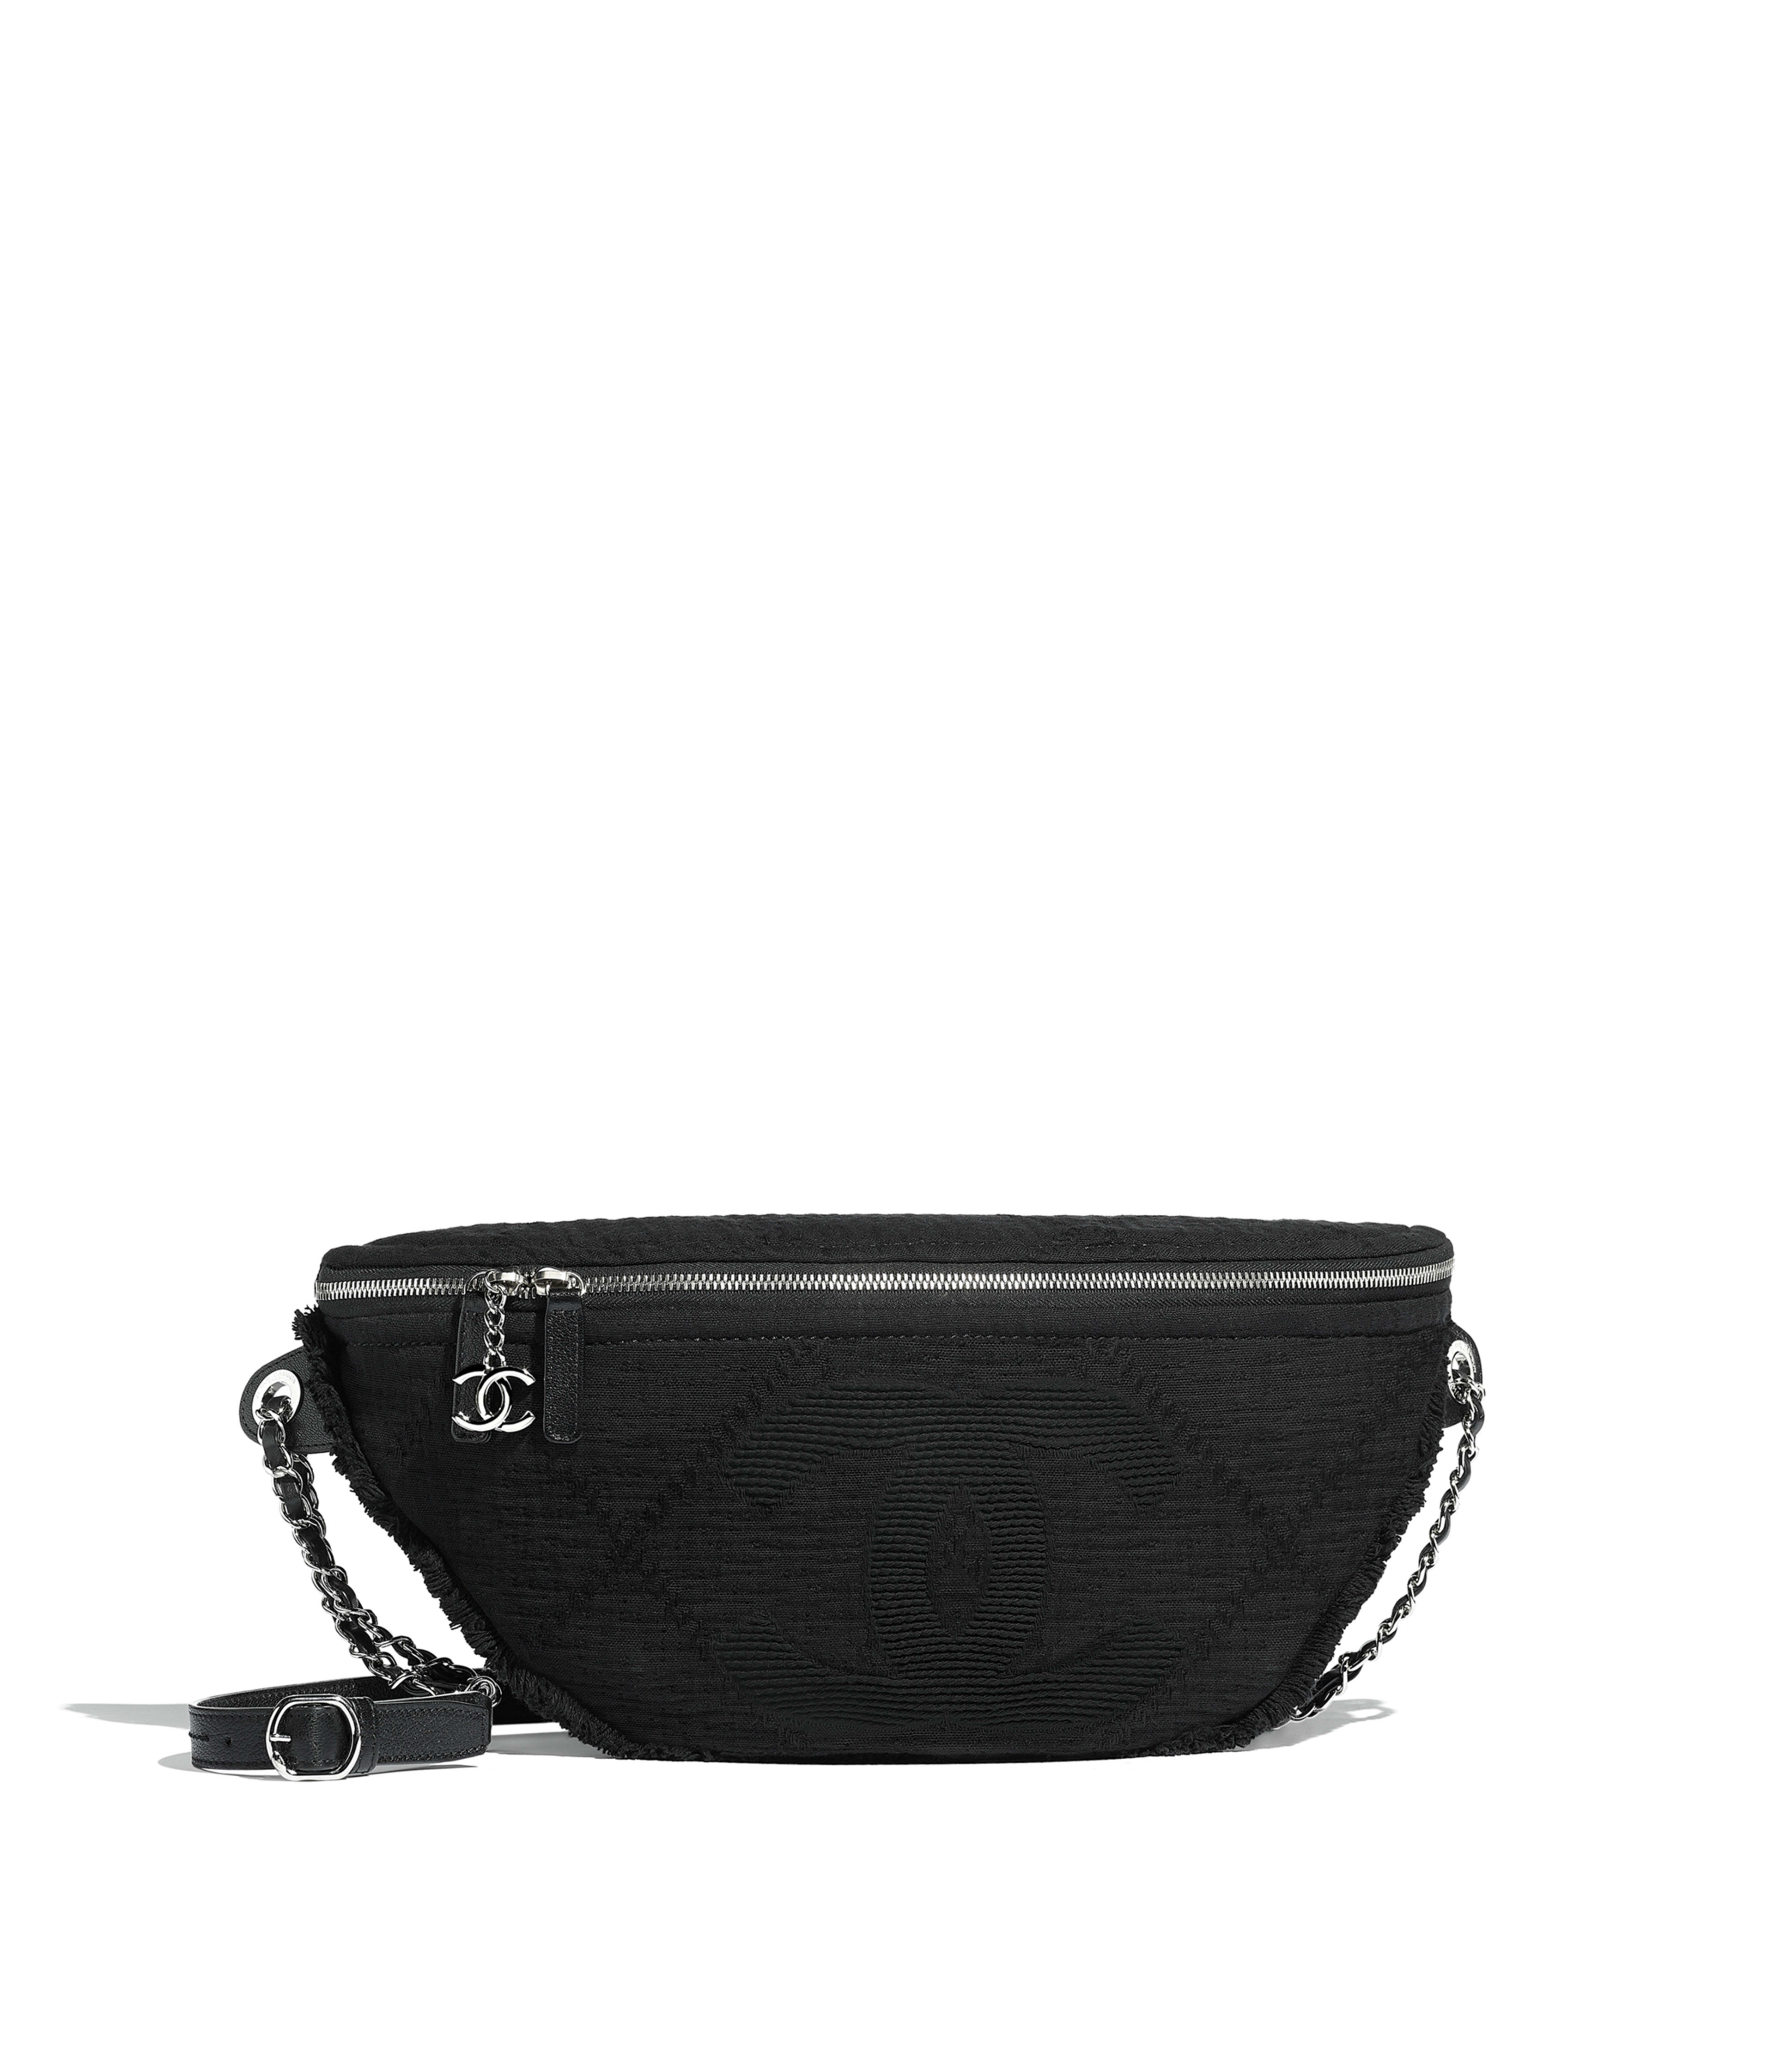 bf238c9ad925 Waist Bag Mixed Fibers, Goatskin, Silver-Tone Metal, Black Ref.  AS0315B0010794305